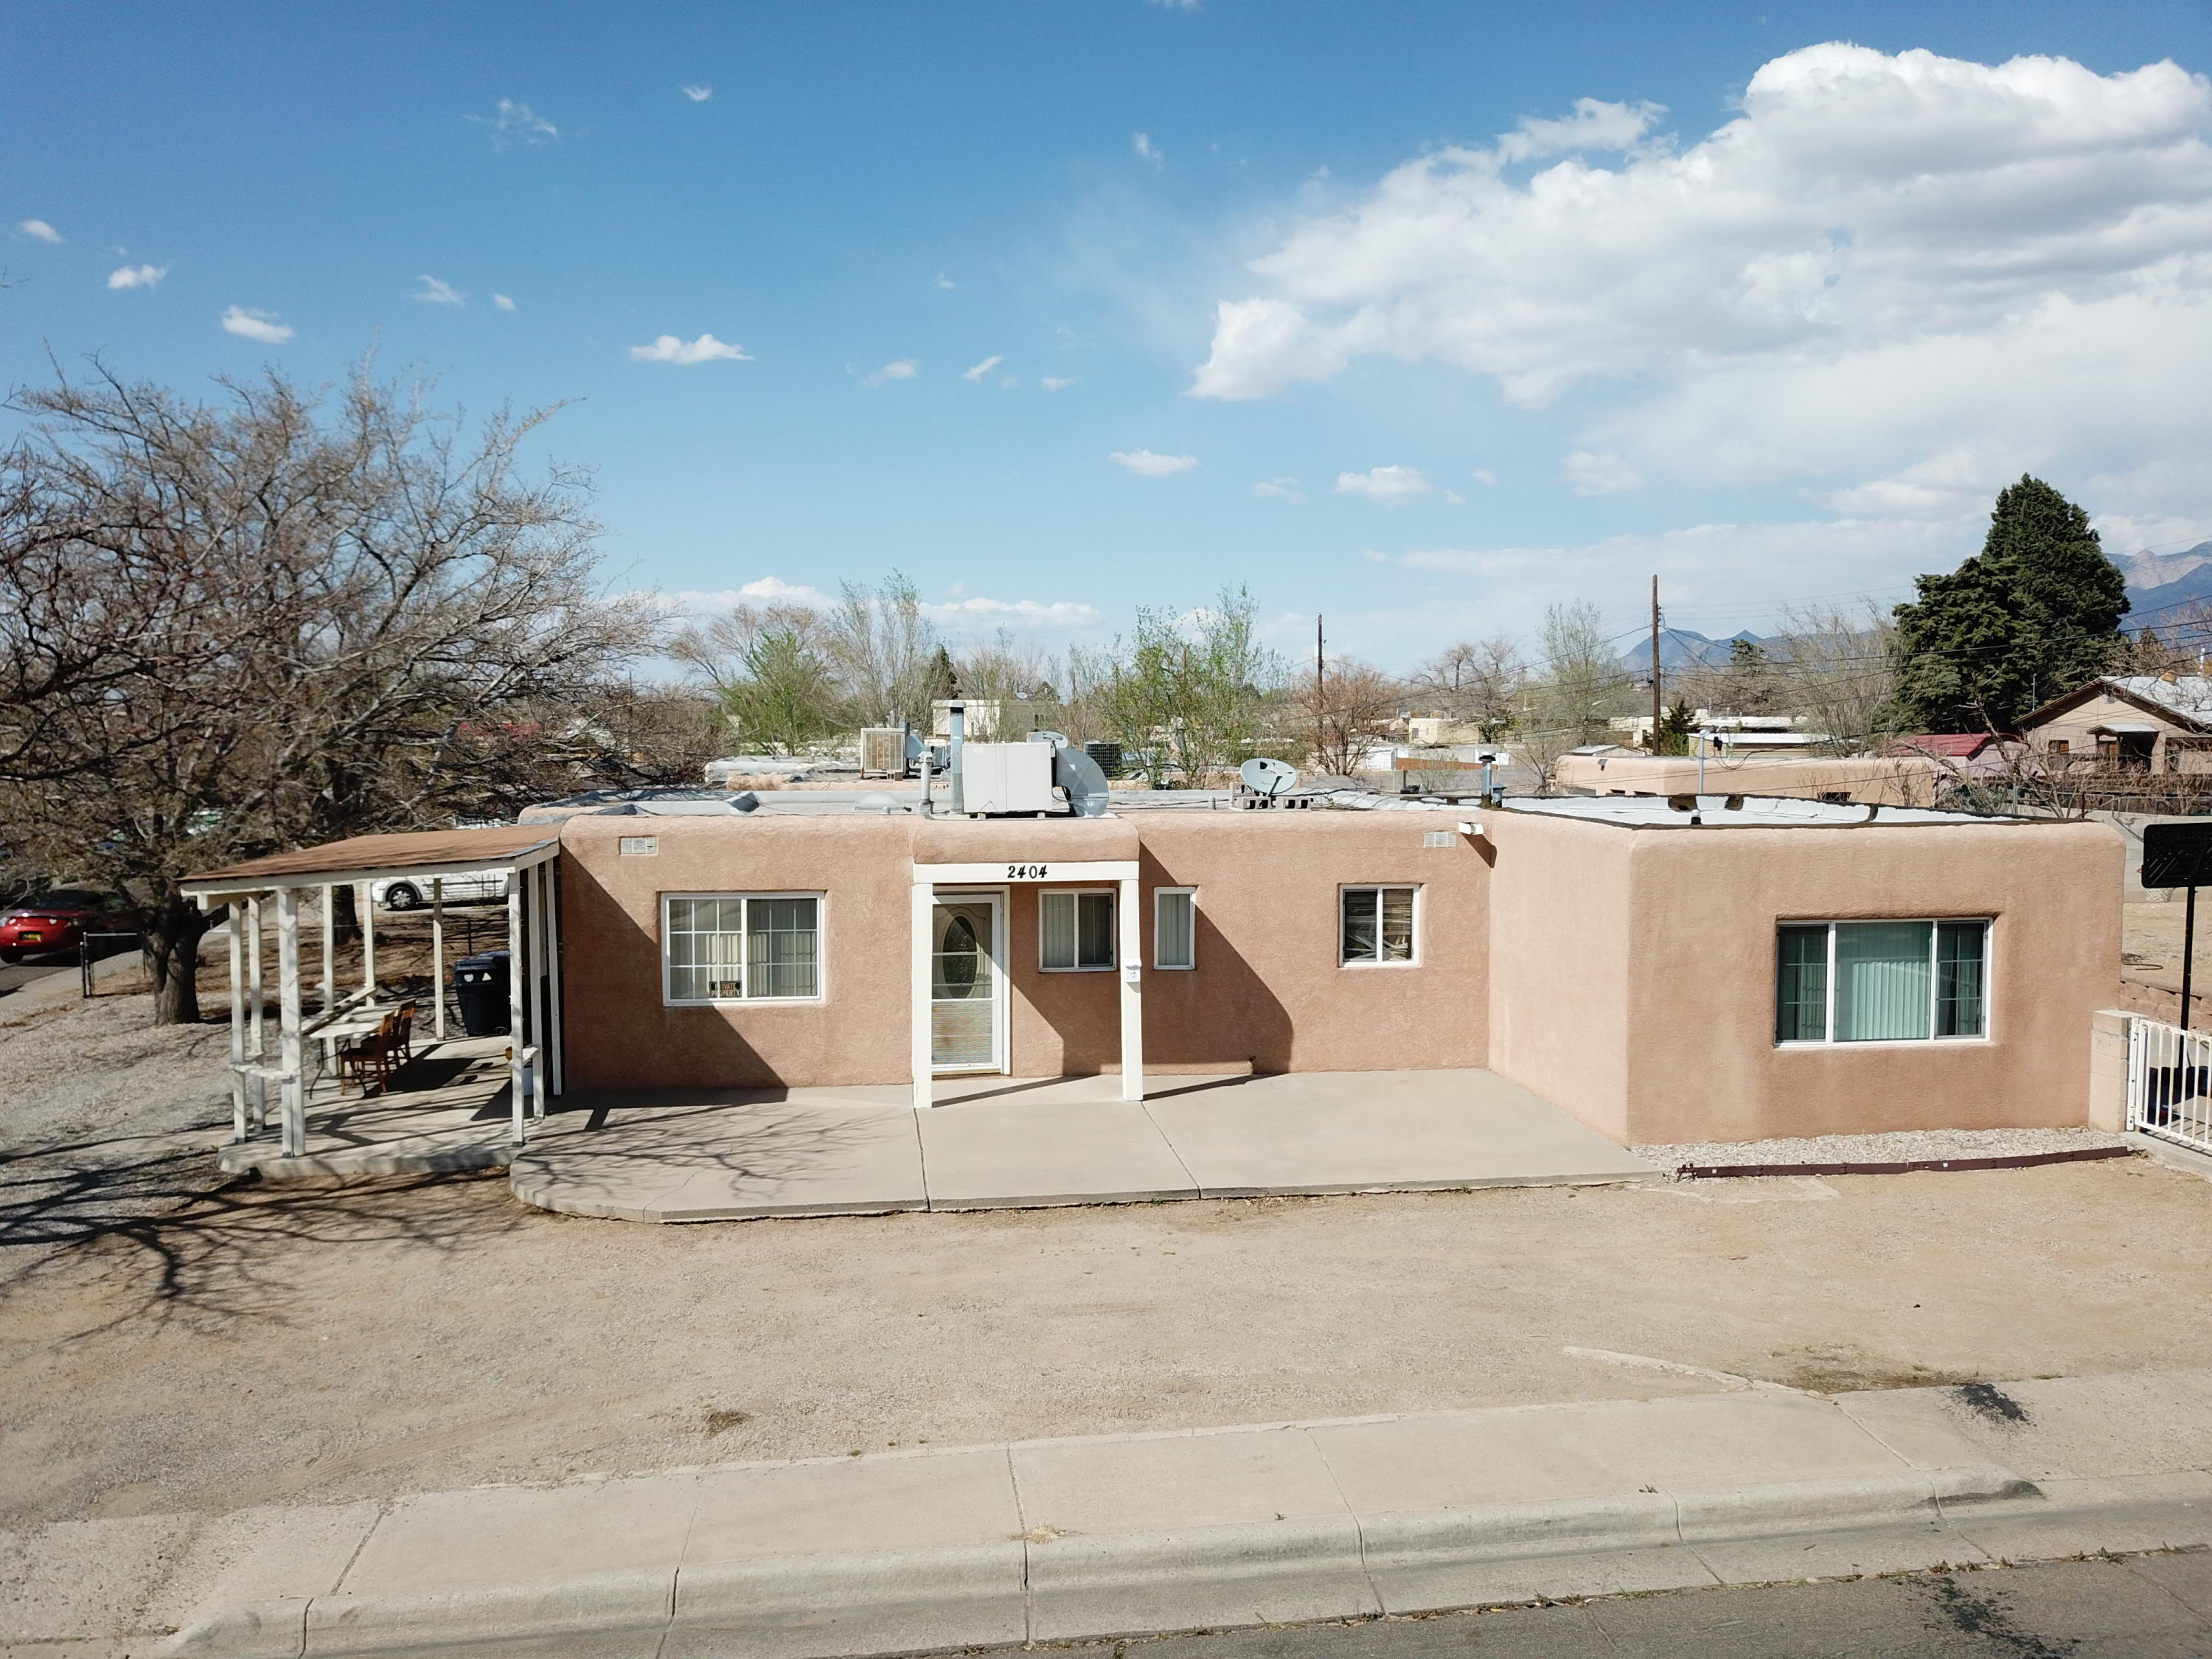 Don't miss your opportunity to call this NE heights gem your new home.  Location, location, location.  Conveniently located is close proximity to Coronado Mall, restaurants, shopping, I-40 & I-25.  This floor plan offers 3 bedrooms one bath.  Its situated on a corner lot with back yard access.  With strong offer seller will repaint the full interior of the property, and install new carpet, after tenants vacates the property.  Buyer can pick coloring of paint and carpeting. Enjoy the gorgeous NM weather in the backyard and enjoy the views of the Mountains.  Schedule your showing soon.  It won't last long.